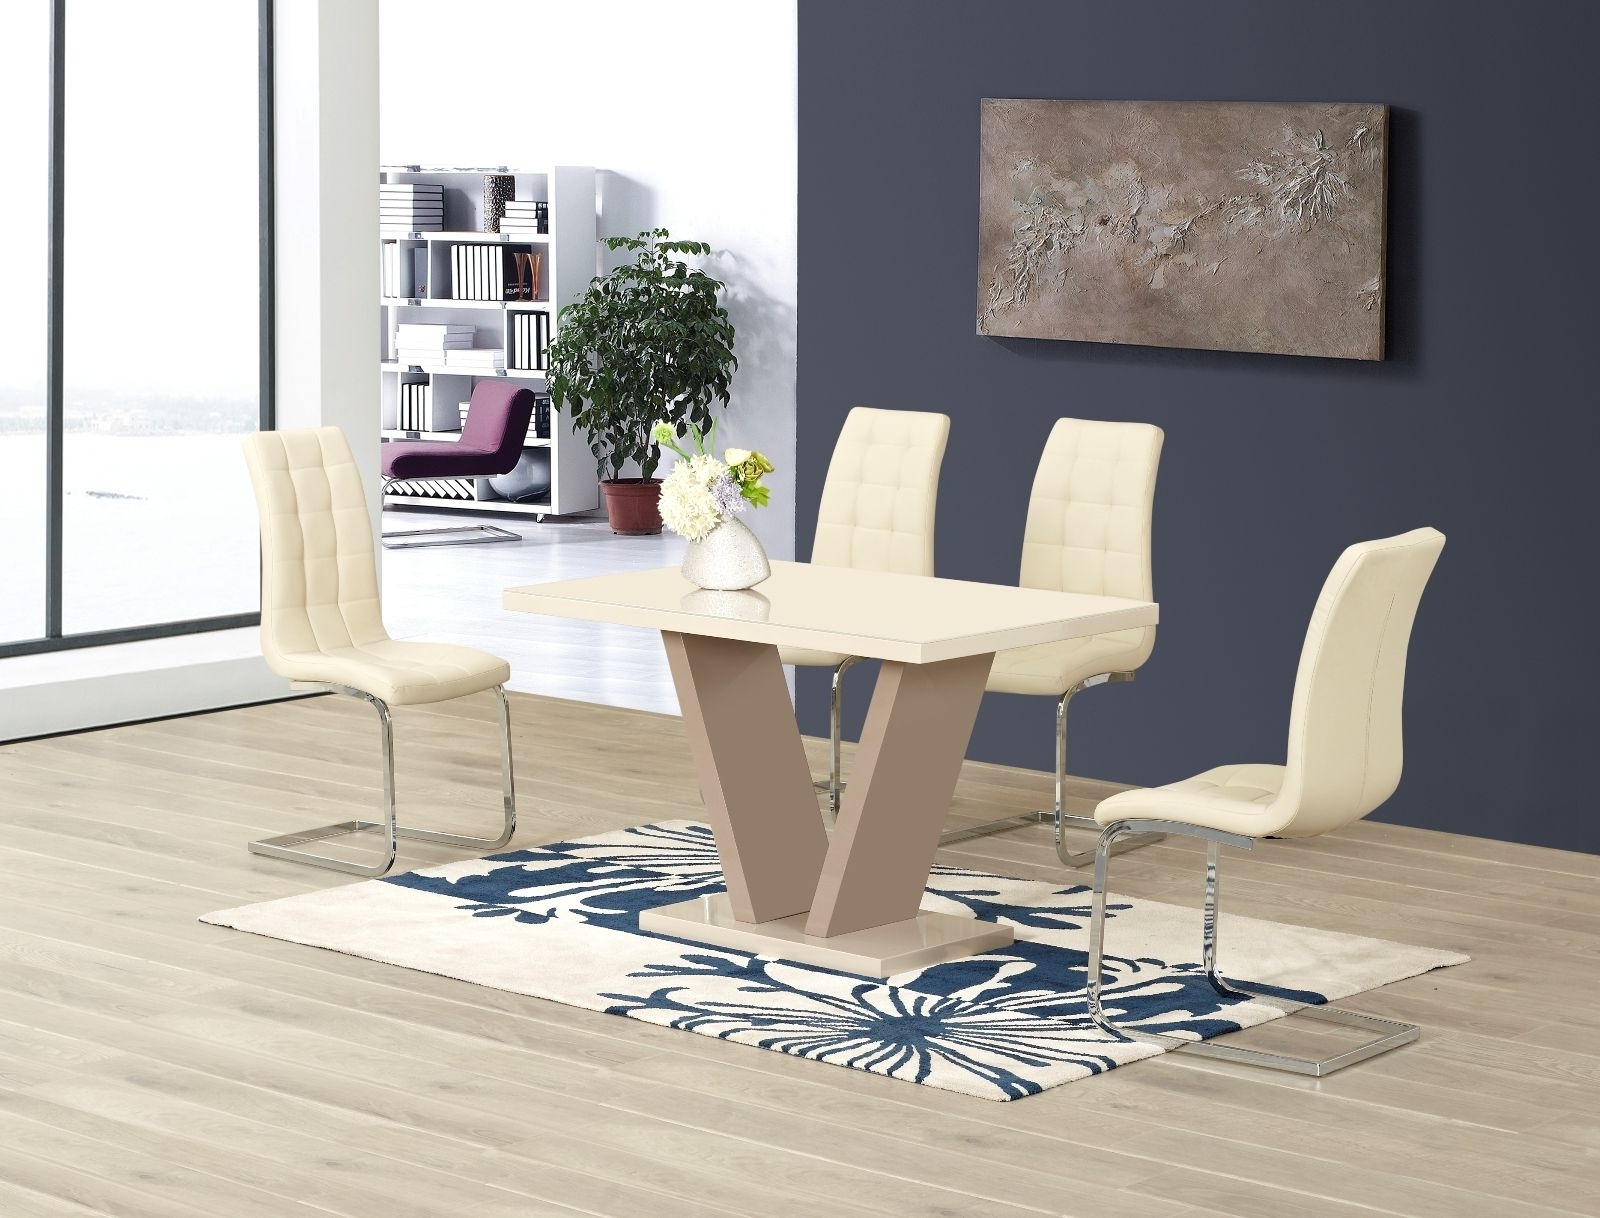 Ga Vico Cream Gloss Designer 120 Cm Dining Set & 4 Araceli Or Sicily for Well known High Gloss Cream Dining Tables